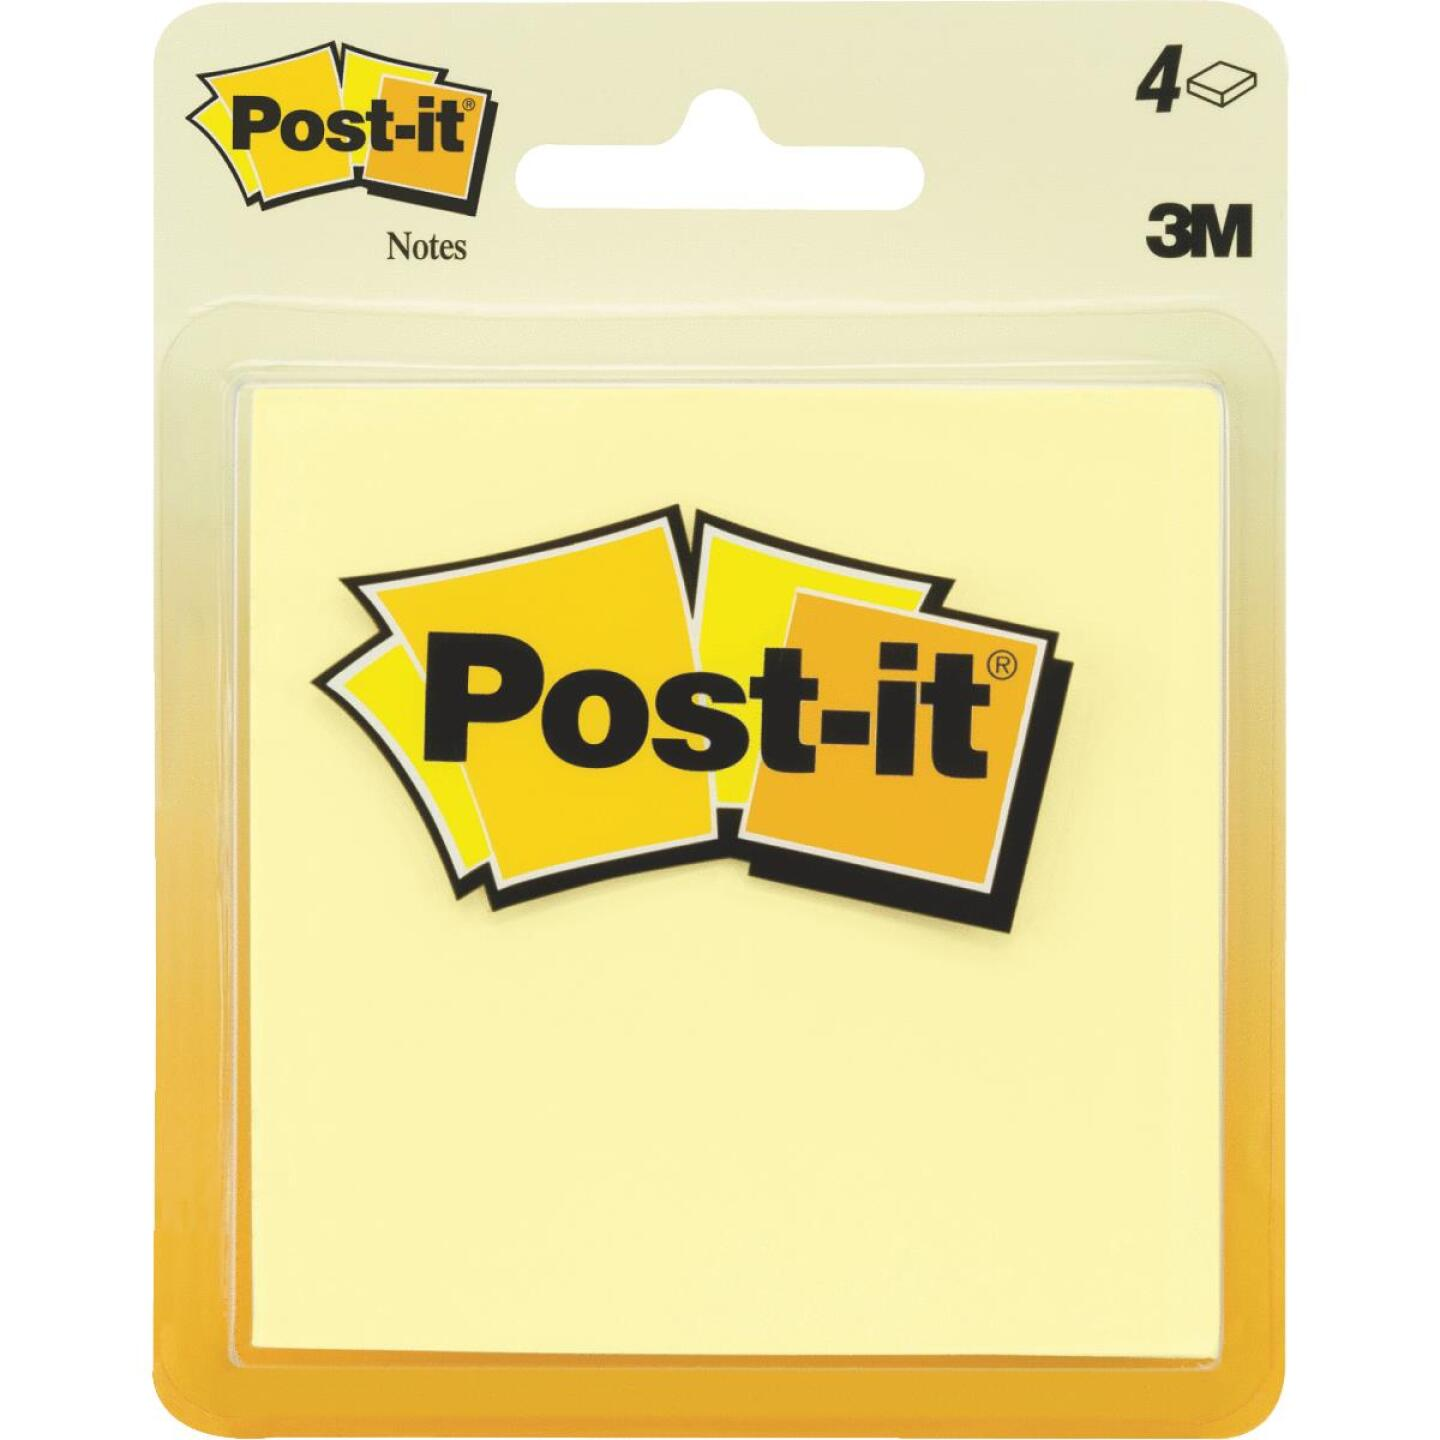 Post-It 2-7/8 In. X 2-7/8 In. Yellow Self-Stick Note Pad (4-Pack) Image 1